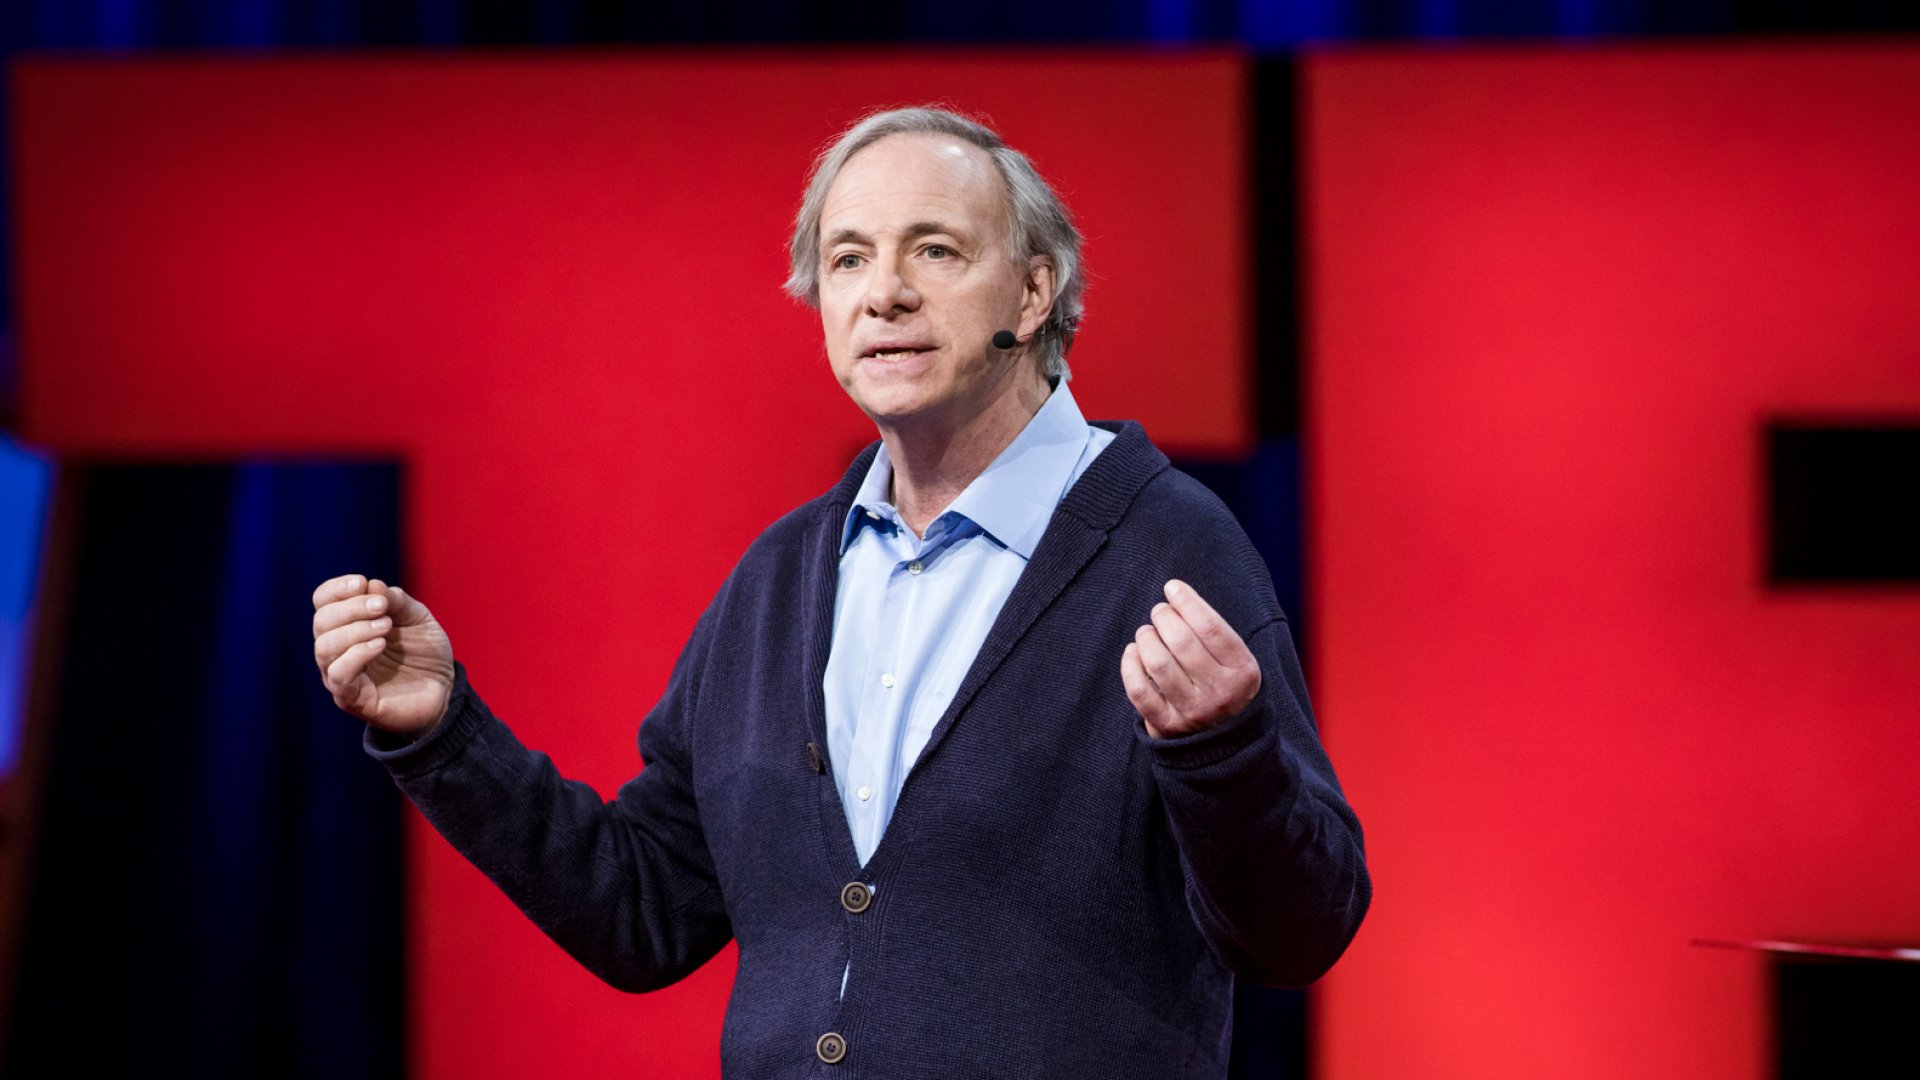 Ray Dalio speaks at TED2017 - The Future You.